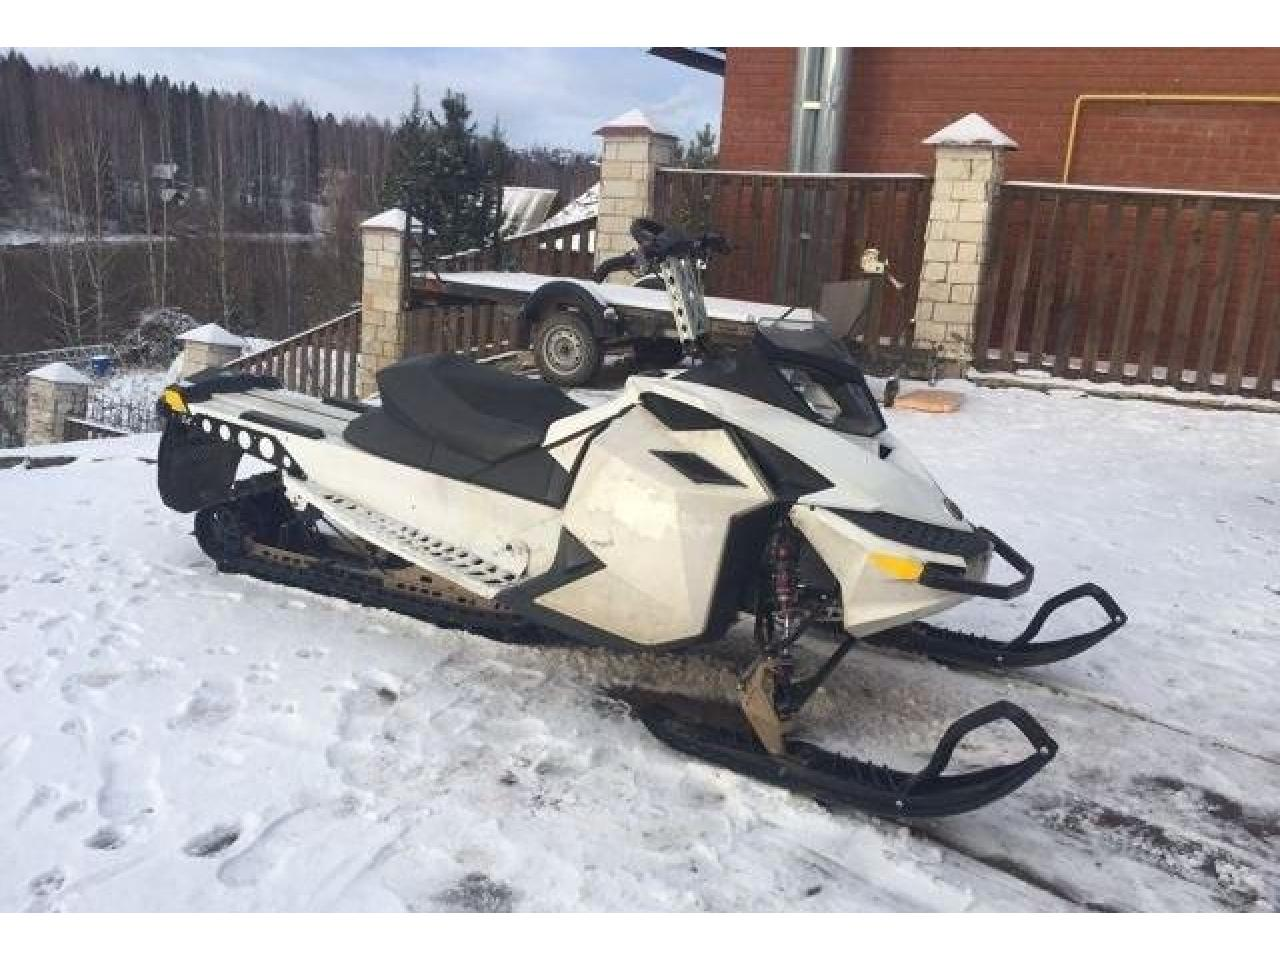 BRP Ski-doo Summit Freeride 800etec 154 - 2/4